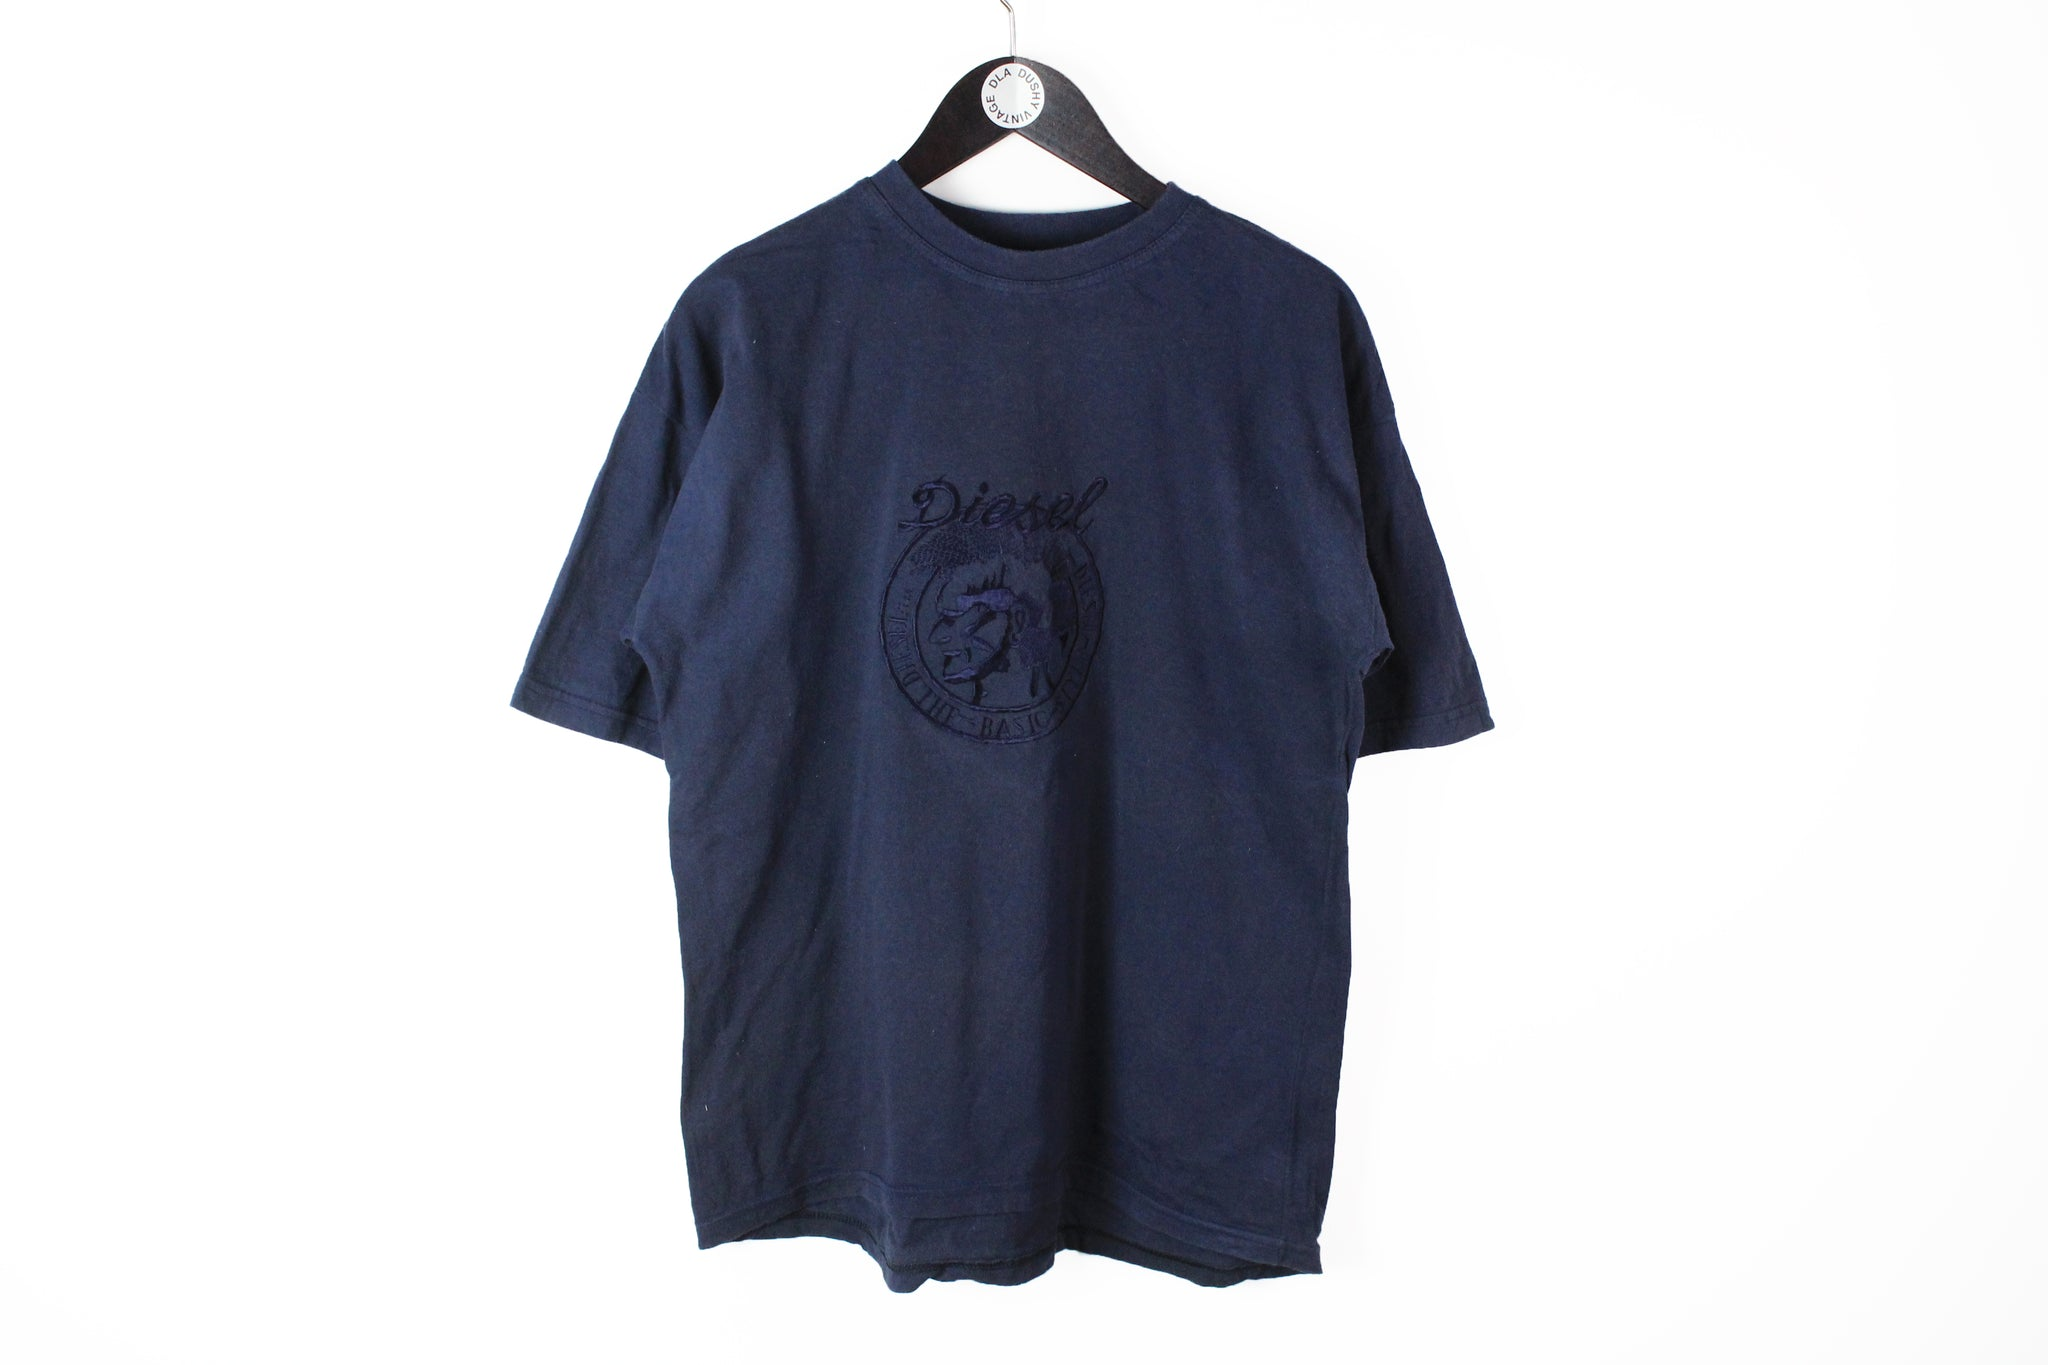 Vintage Diesel T-Shirt Medium embroidery big logo 80's navy blue cotton tee